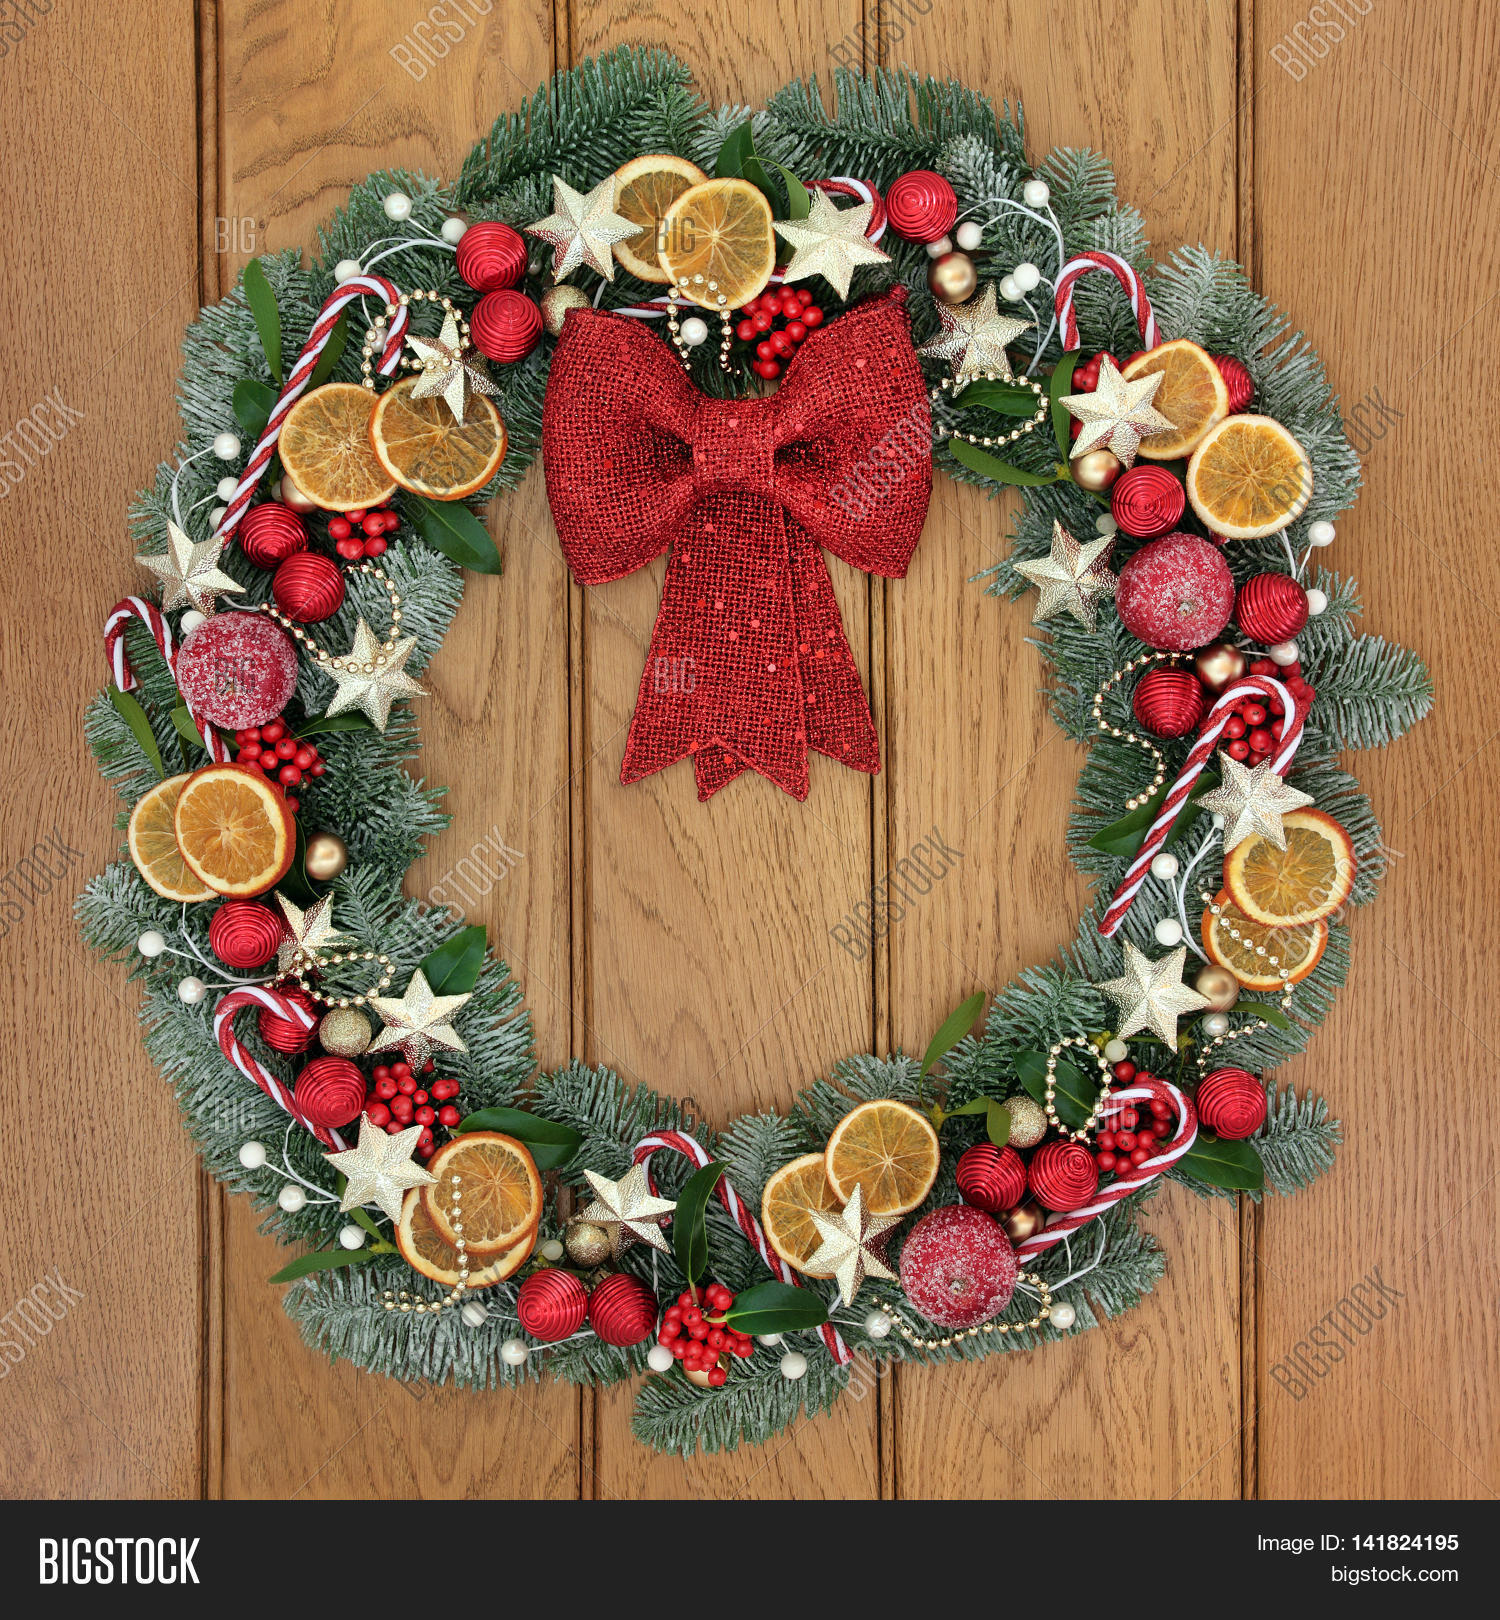 Fruit over the door christmas decoration - Christmas Wreath Decoration With Gold Star And Red Bow Bauble Decorations Candy Canes Dried